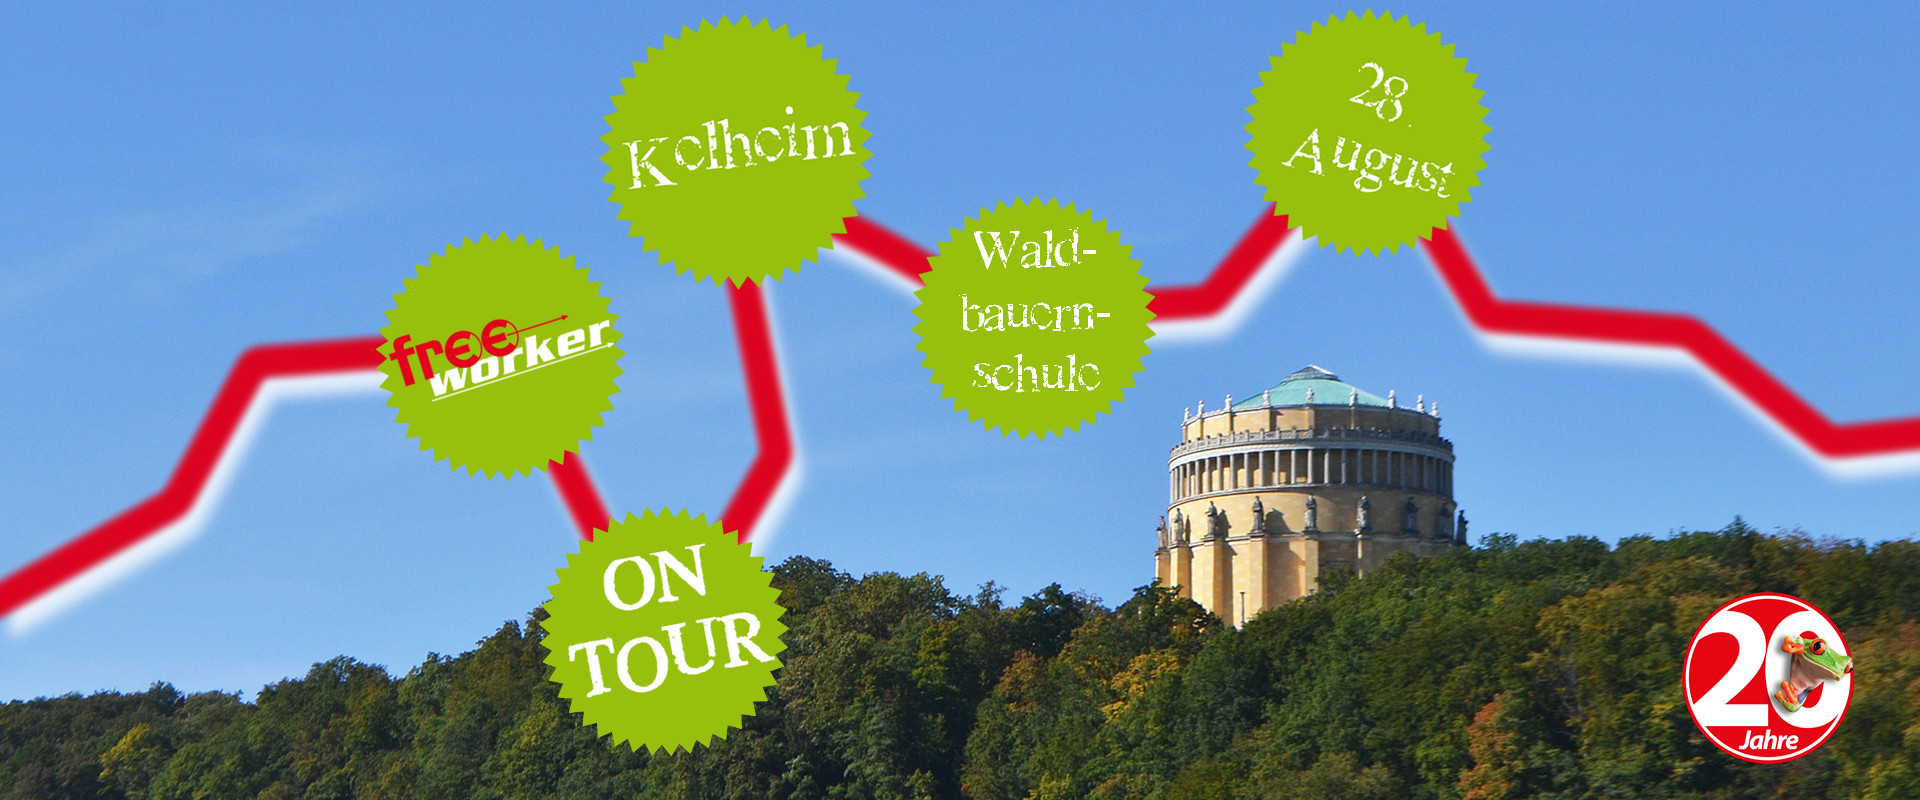 Permalink zu:Freeworker on Tour – Kelheim